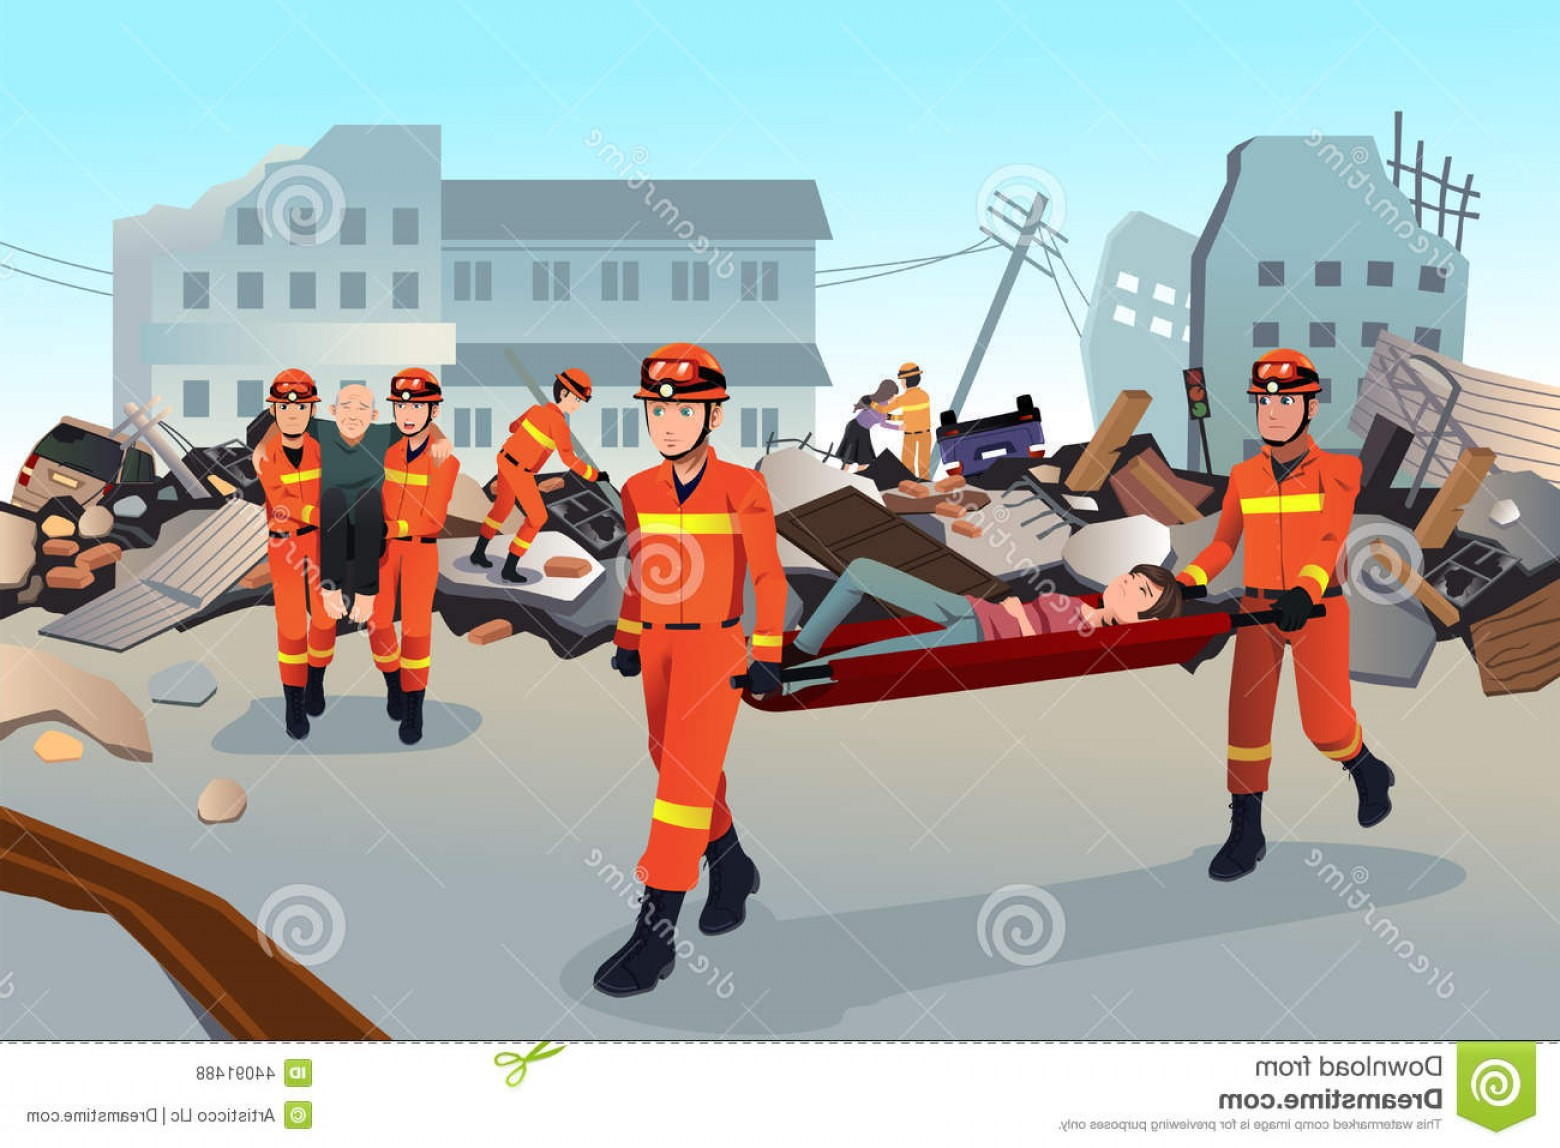 Earthquake Rescue Vector: Stock Illustration Rescue Teams Searching Destroyed Buildings Vector Illustration Earthquake Image